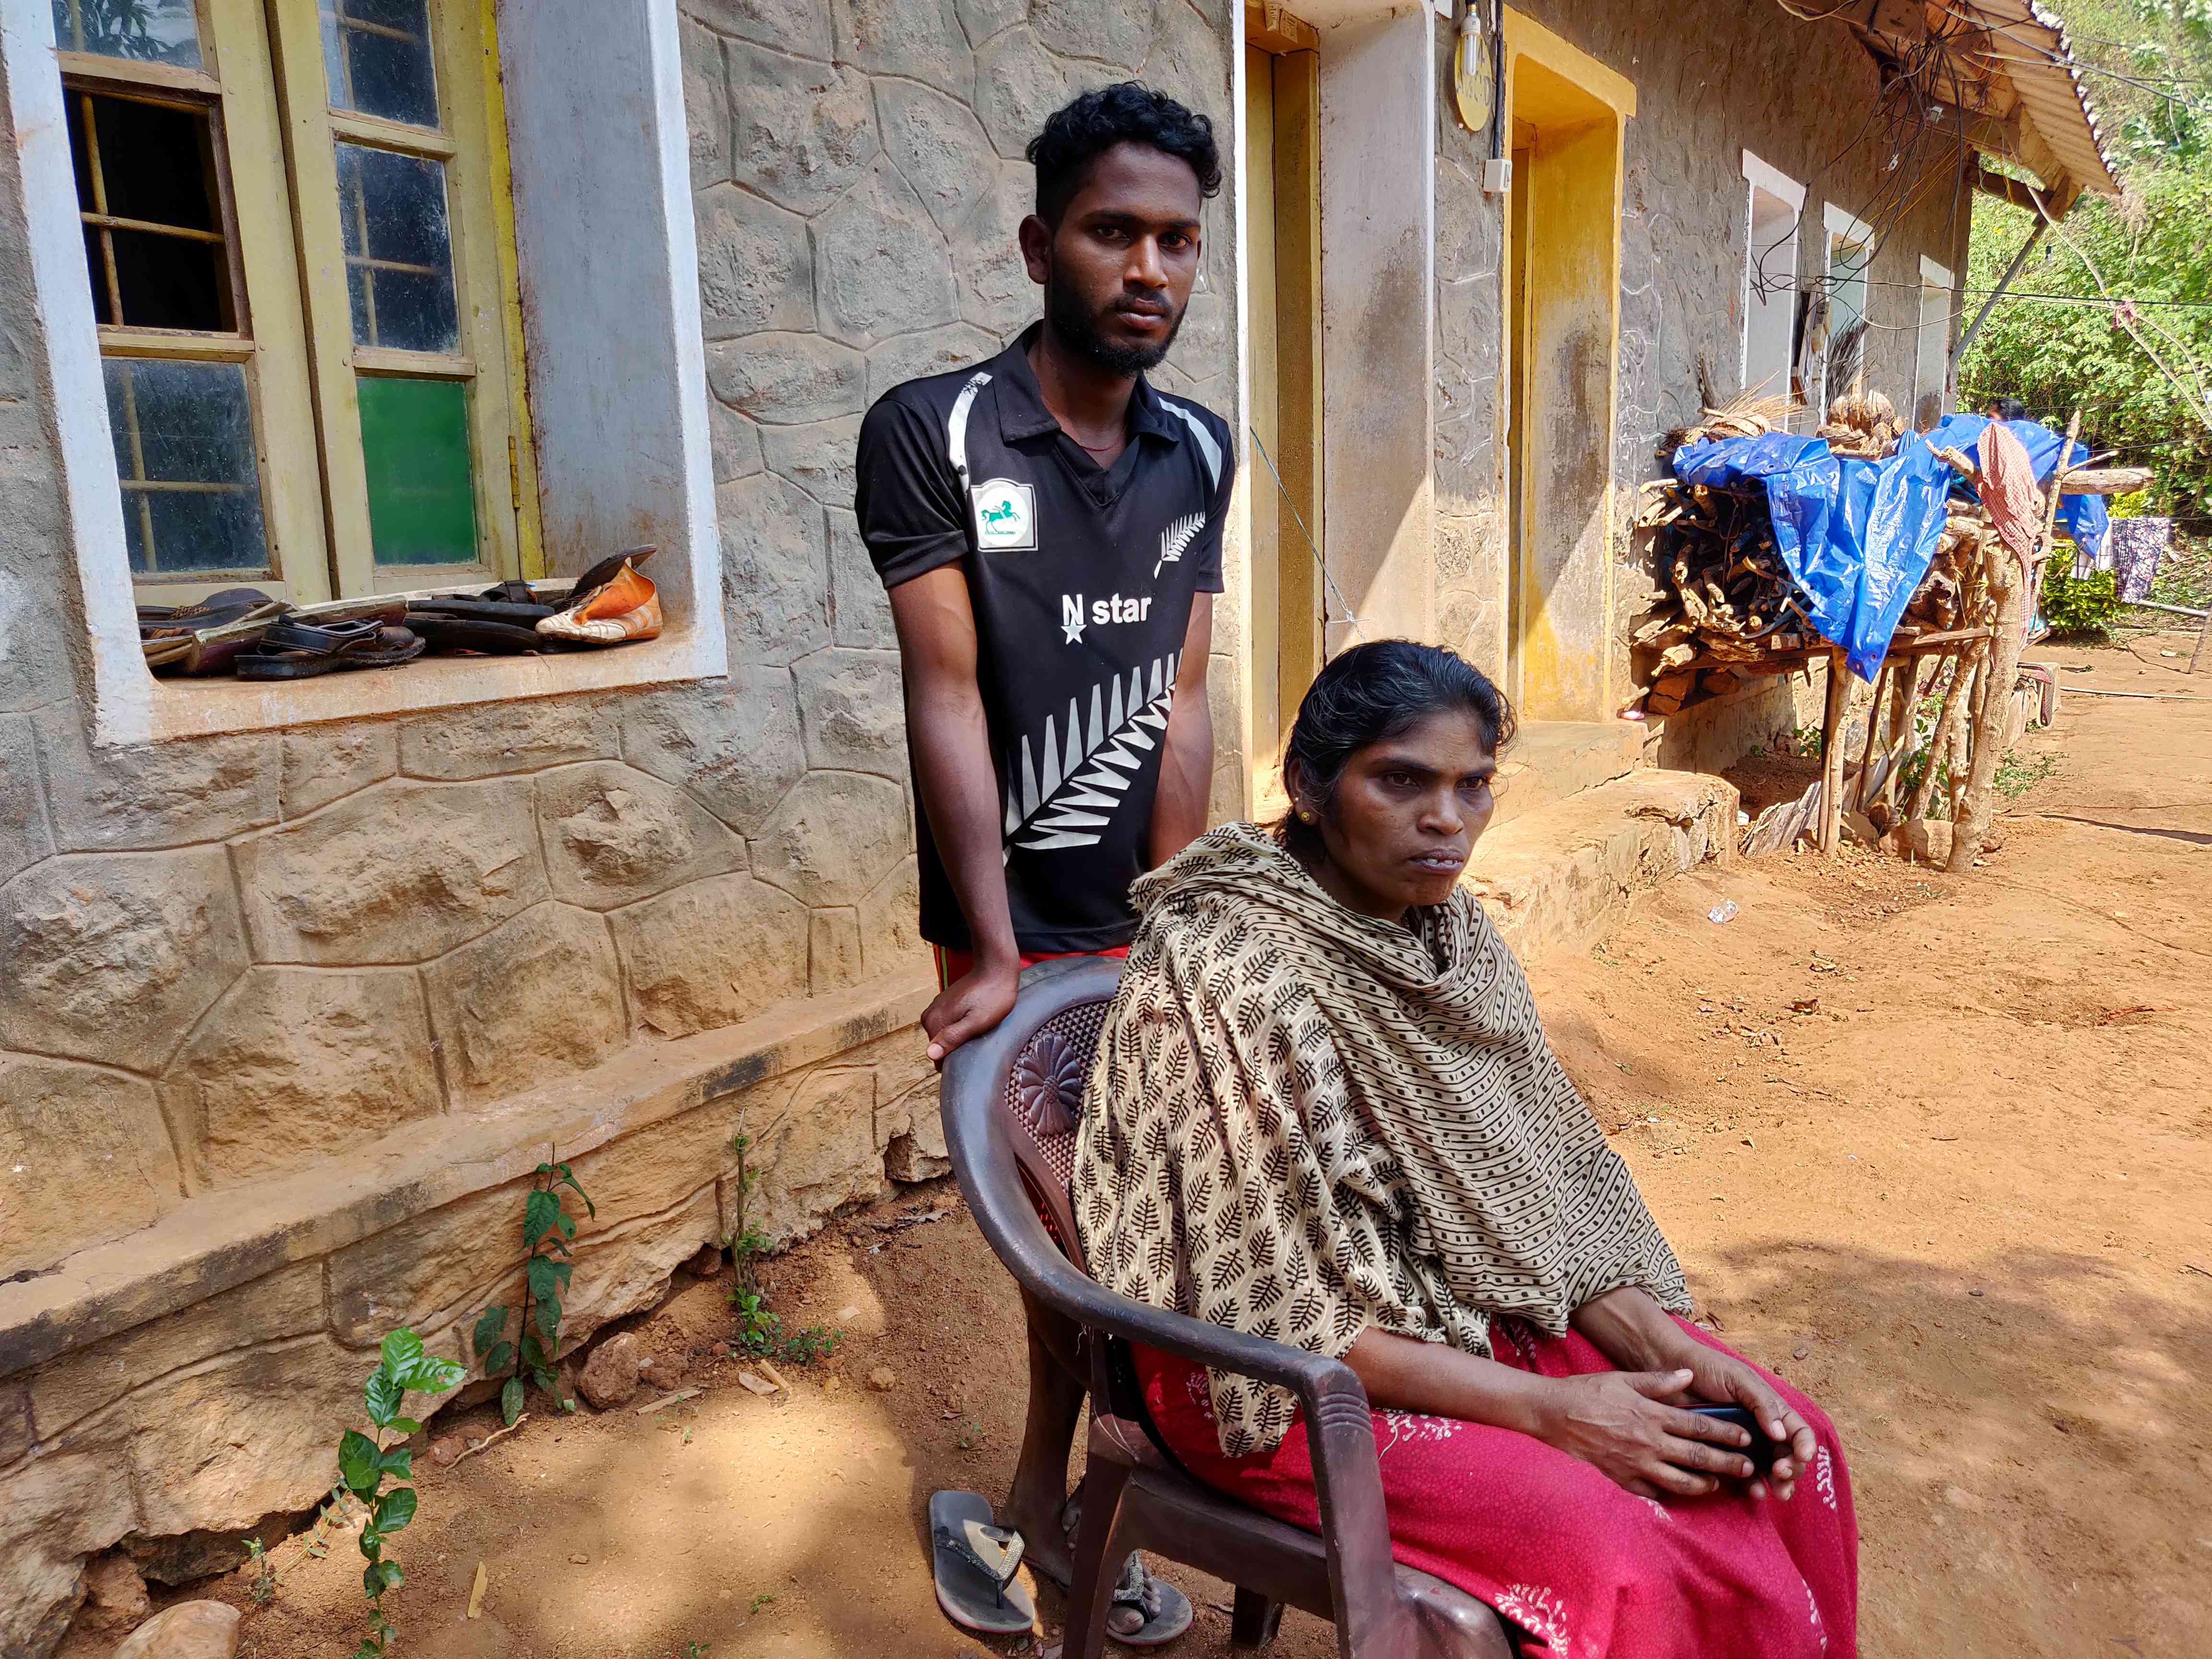 PJ Beena and his son at the relief camp in Idukki. Photo credit: TA Ameerudheen